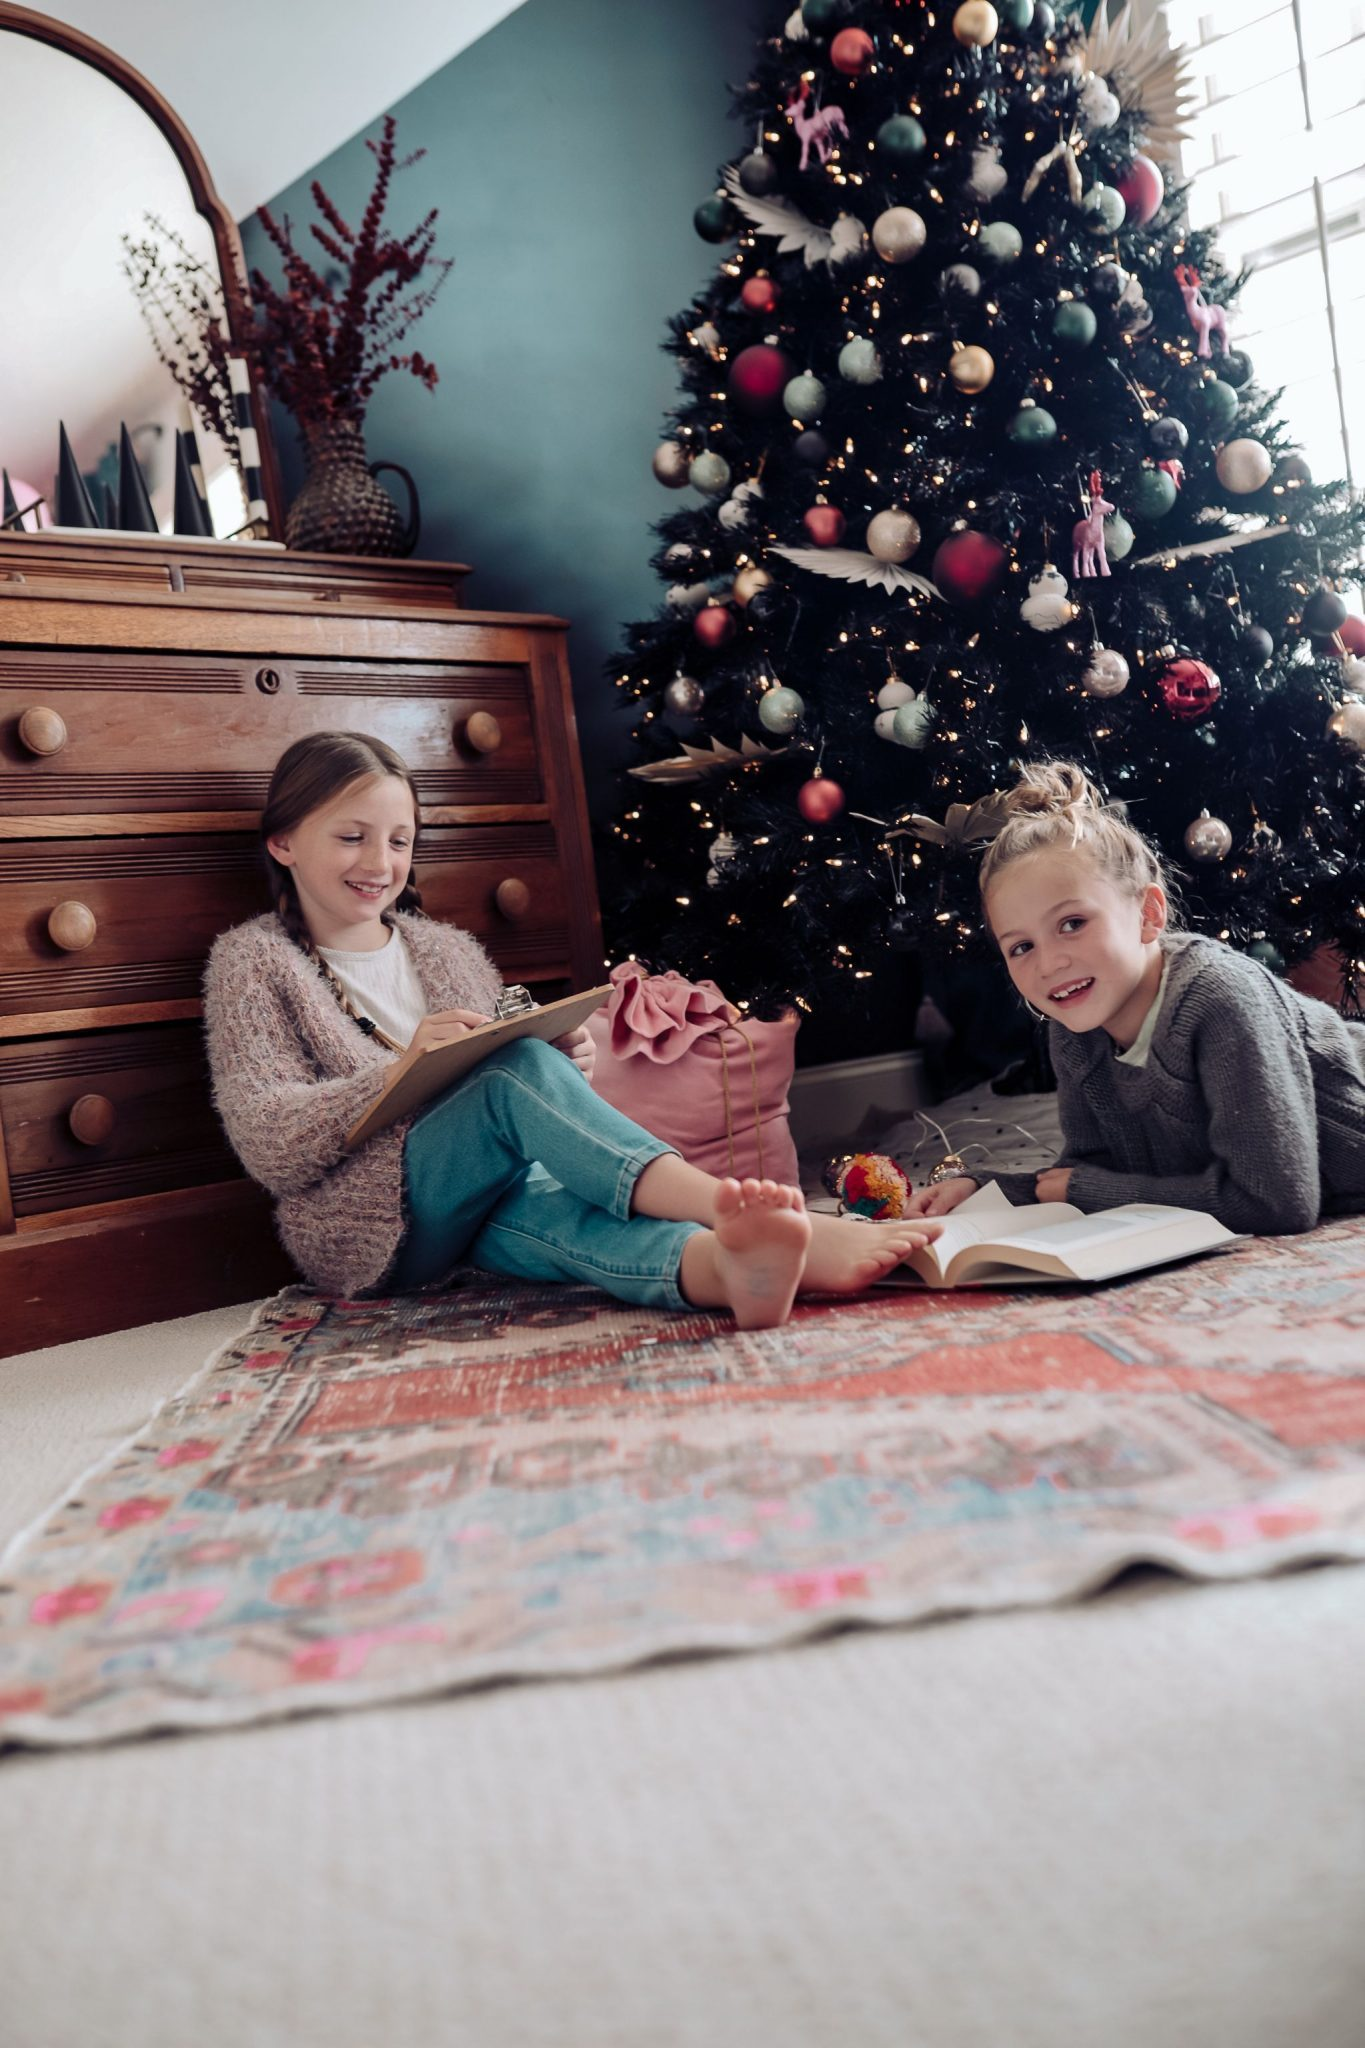 Kids playing on carpet during the holidays